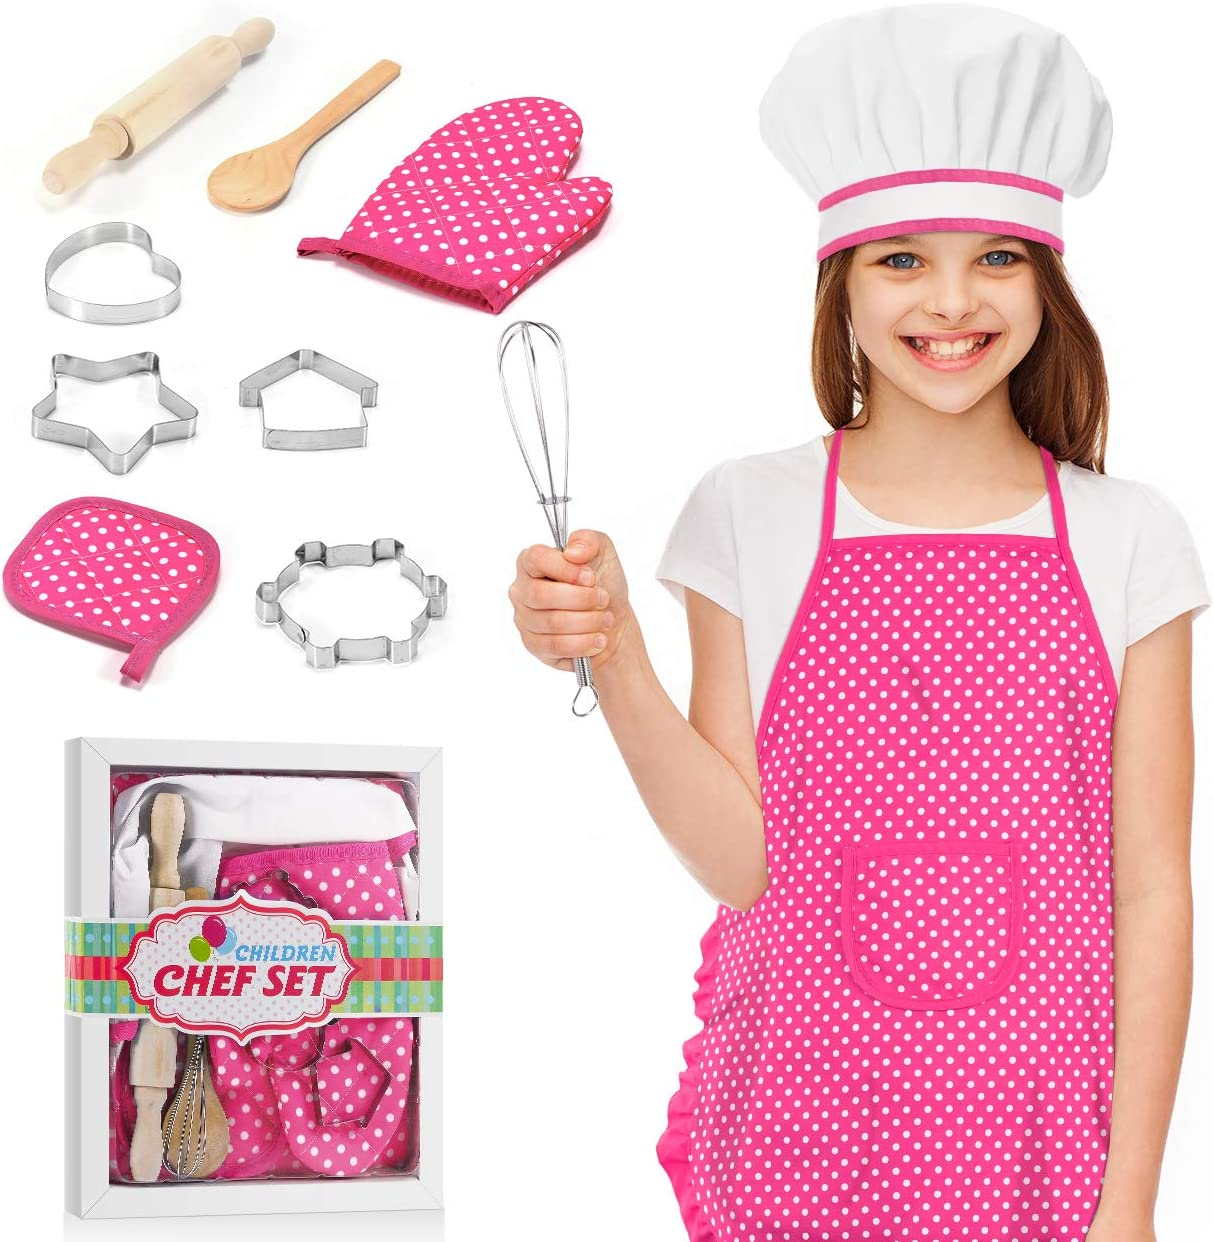 Gifts for 3-8 Year Old Girls, Chef Costume Set for Kids Toys for 3-8 Year Old Girls Chef Role Custome Cooking Toys Birthday Thanksgiving Gifts for Girls Age 4-8 Kids Cooking And Baking Set Pink